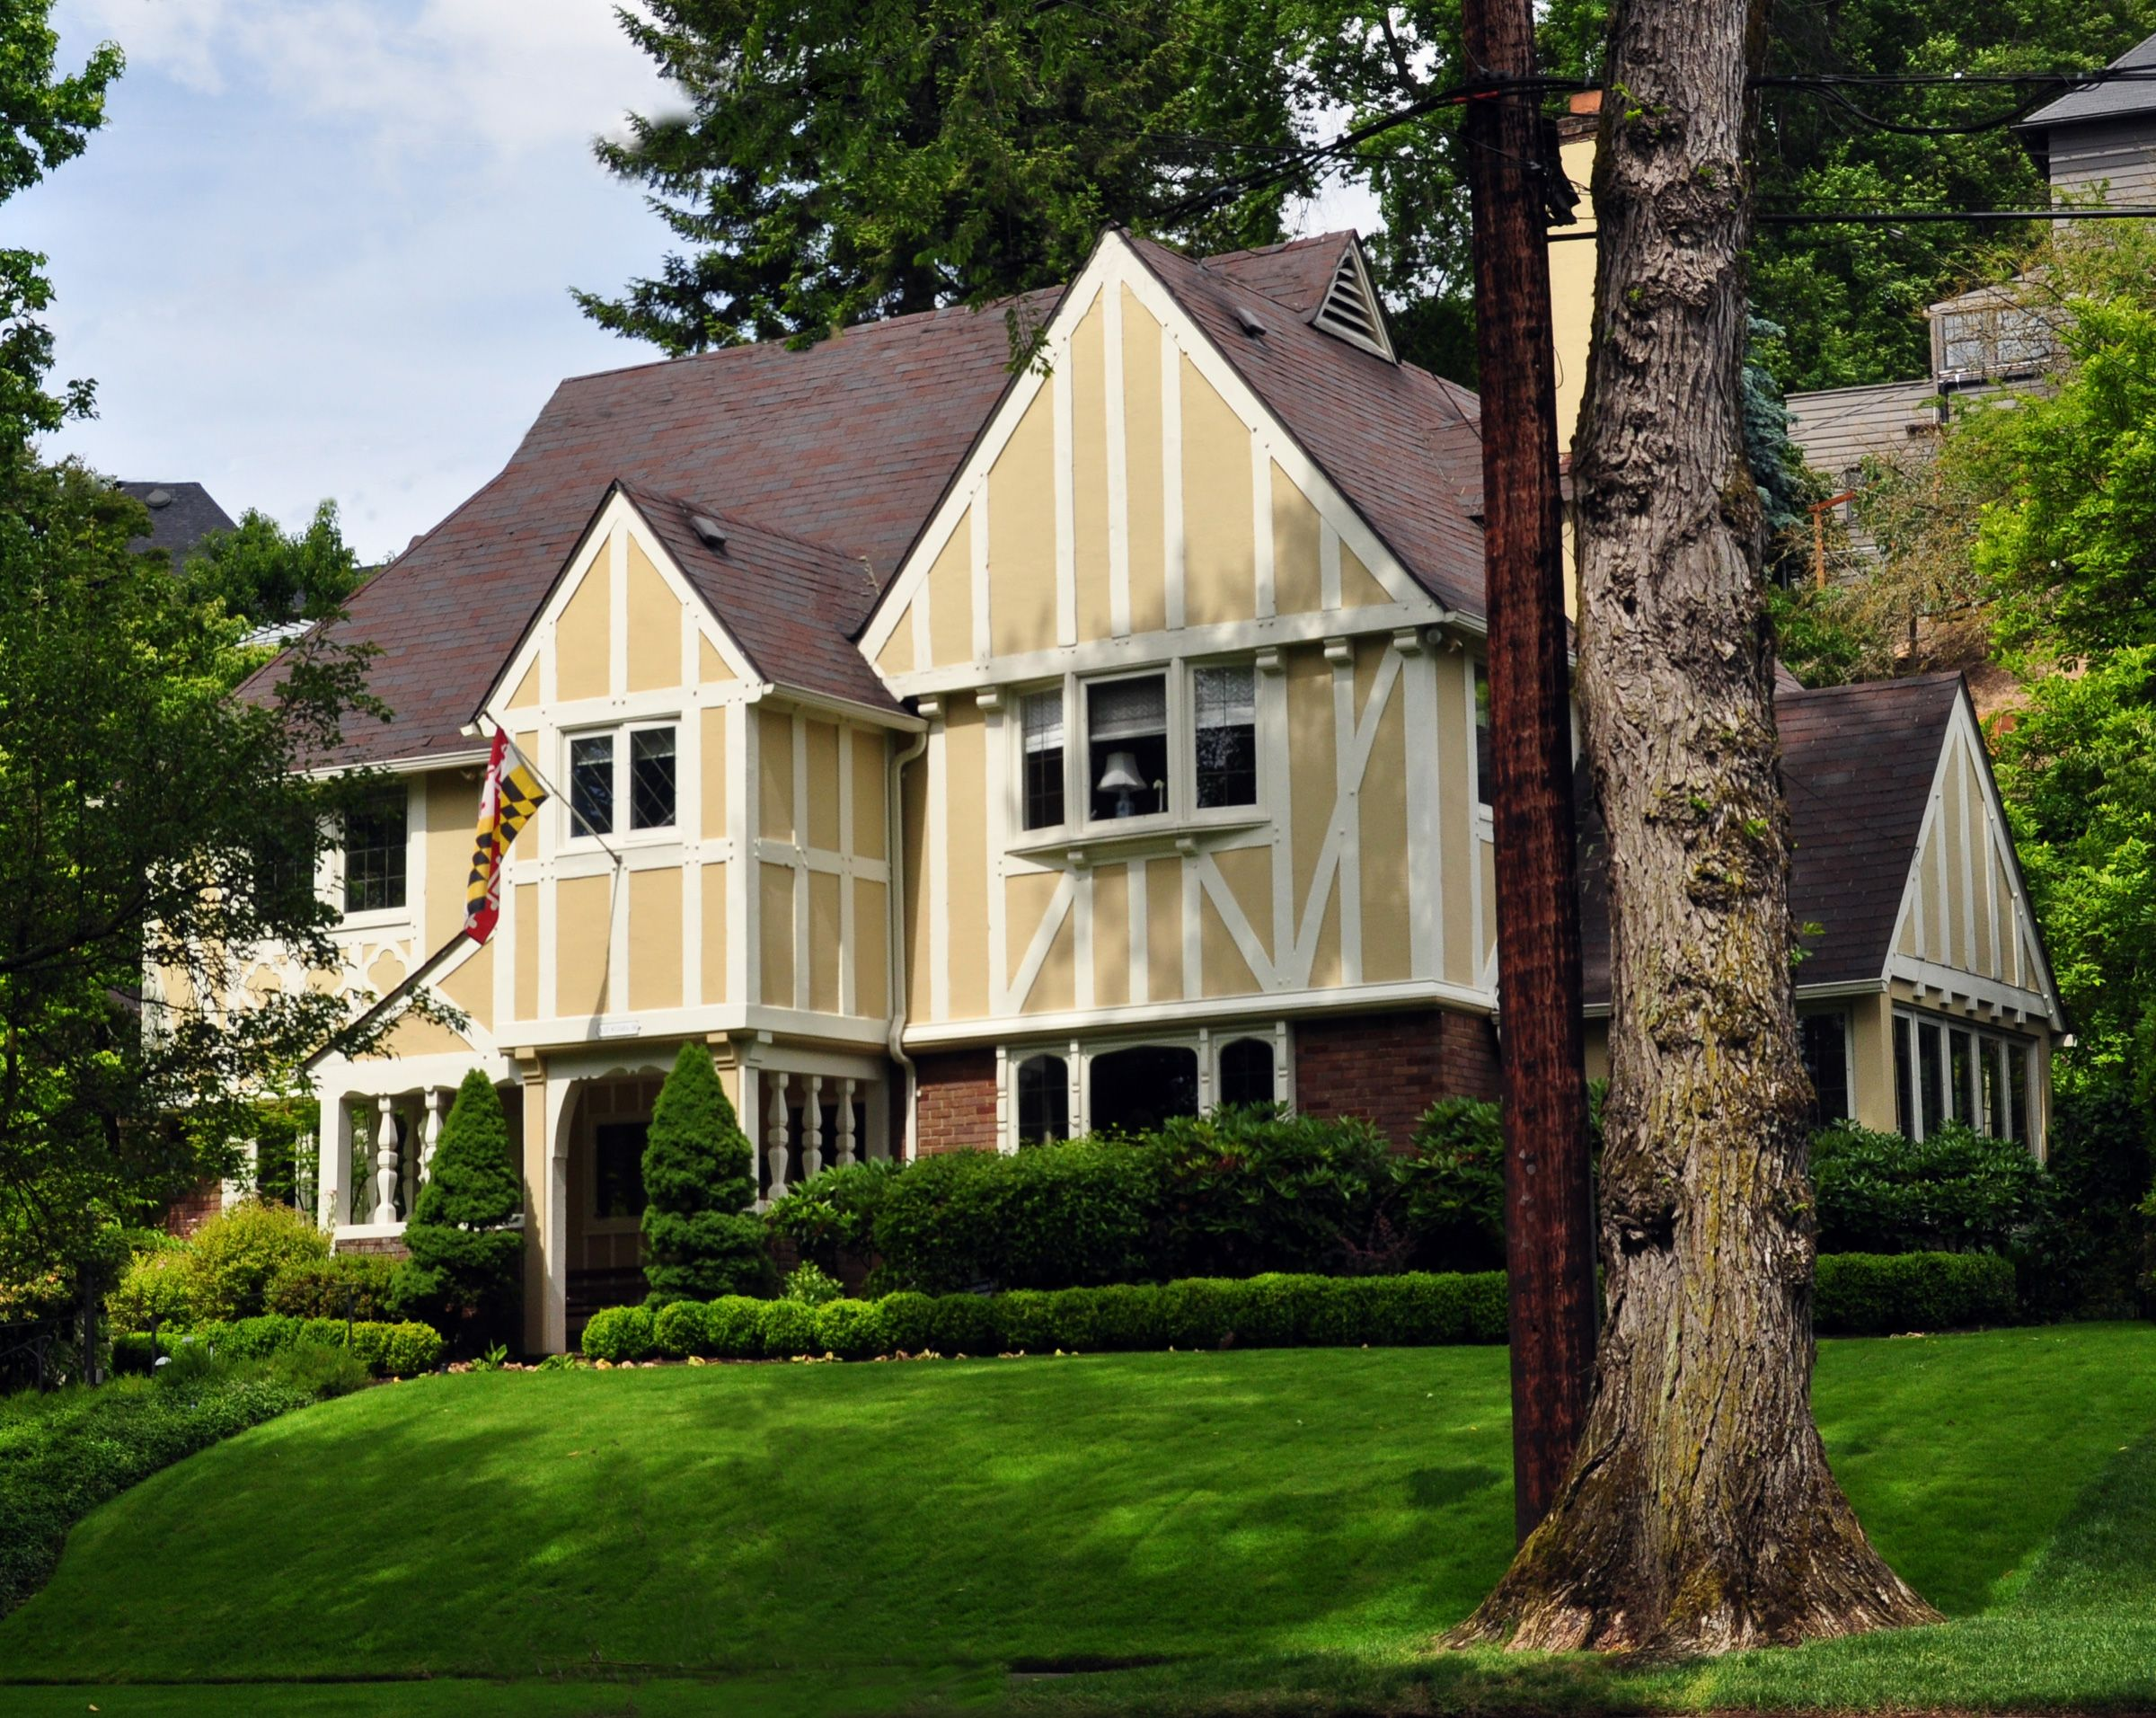 Tudor Revival Style House House Ideas Pinterest Tudor White Trim And House